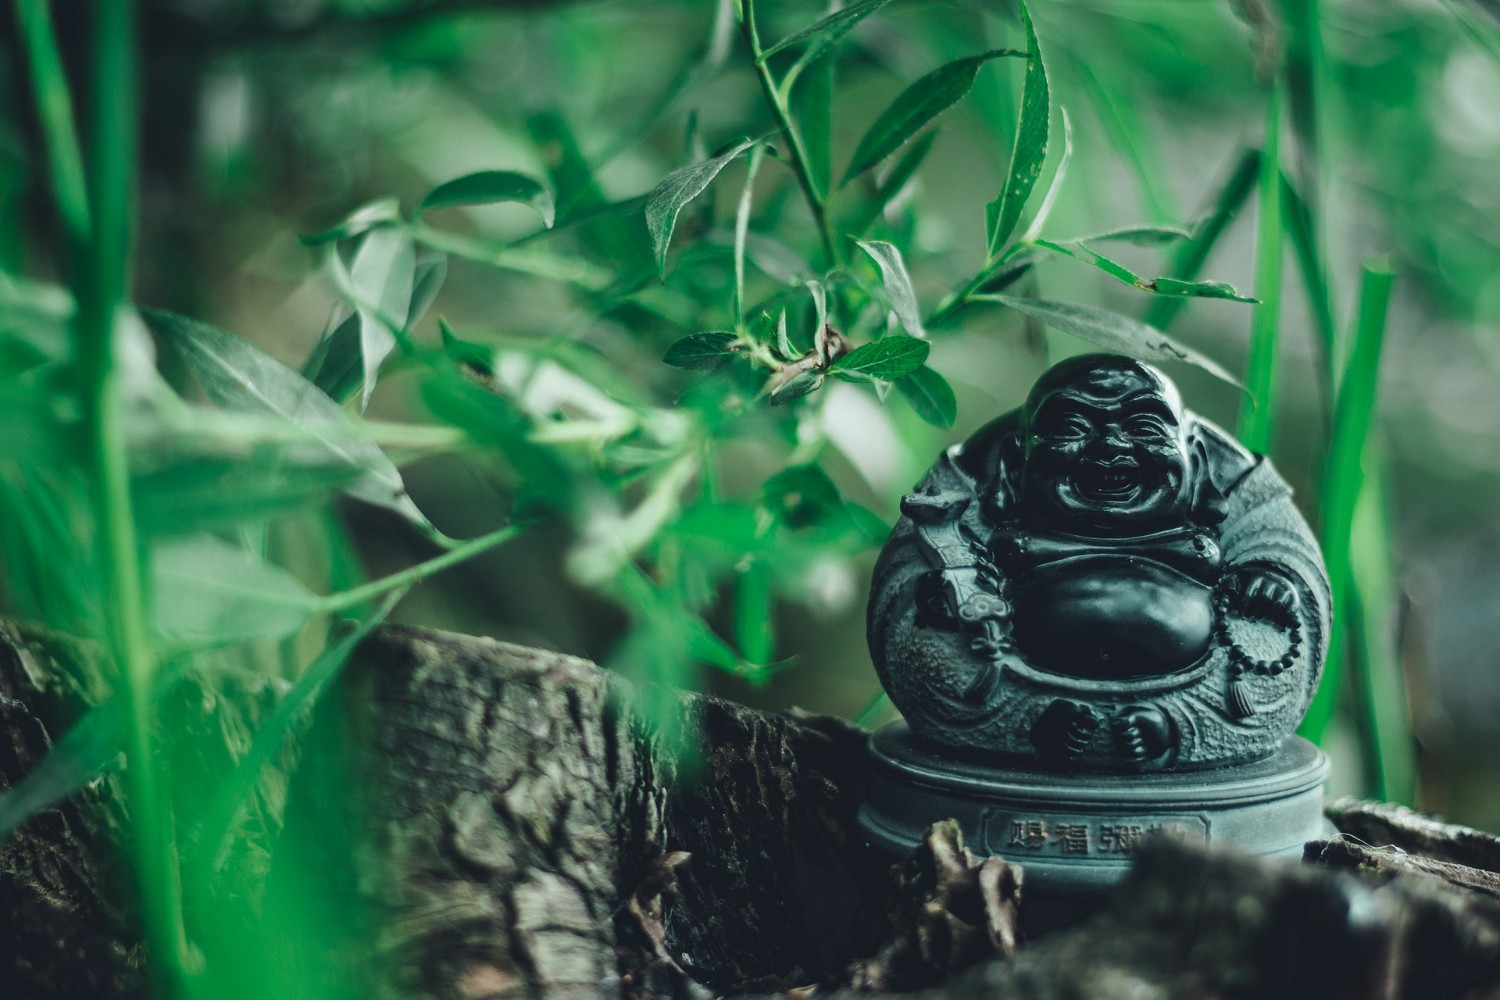 Green laughing Buddha statue, surrounded by green leaves